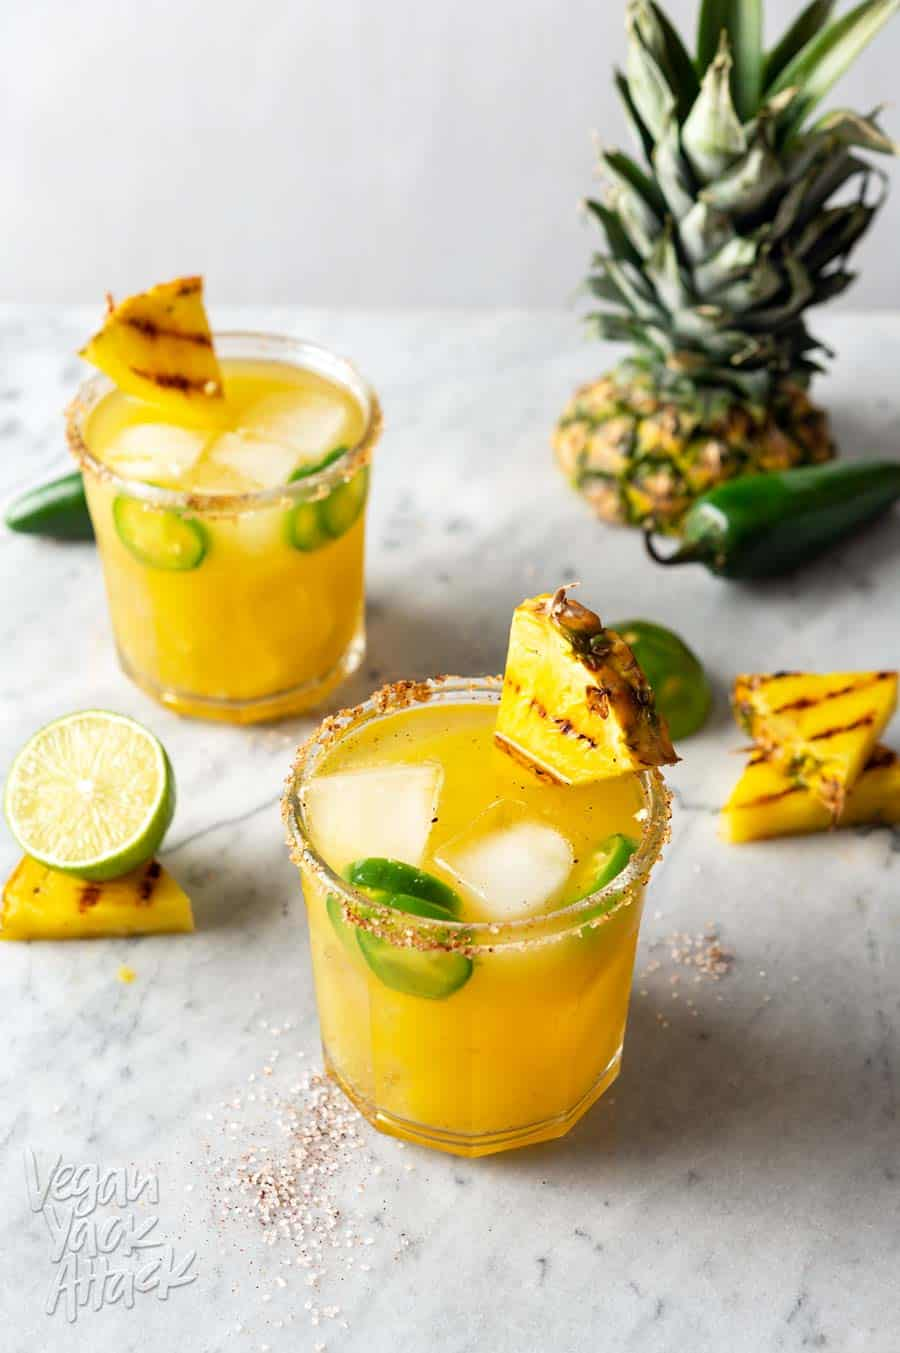 These Charred Pineapple Jalapeño Margaritas are better than any of their predecessors and unique in their own way! Try out this recipe to cool down, while also bringing the heat. #cocktails #margaritas #pineapple #recipe #jalapeno